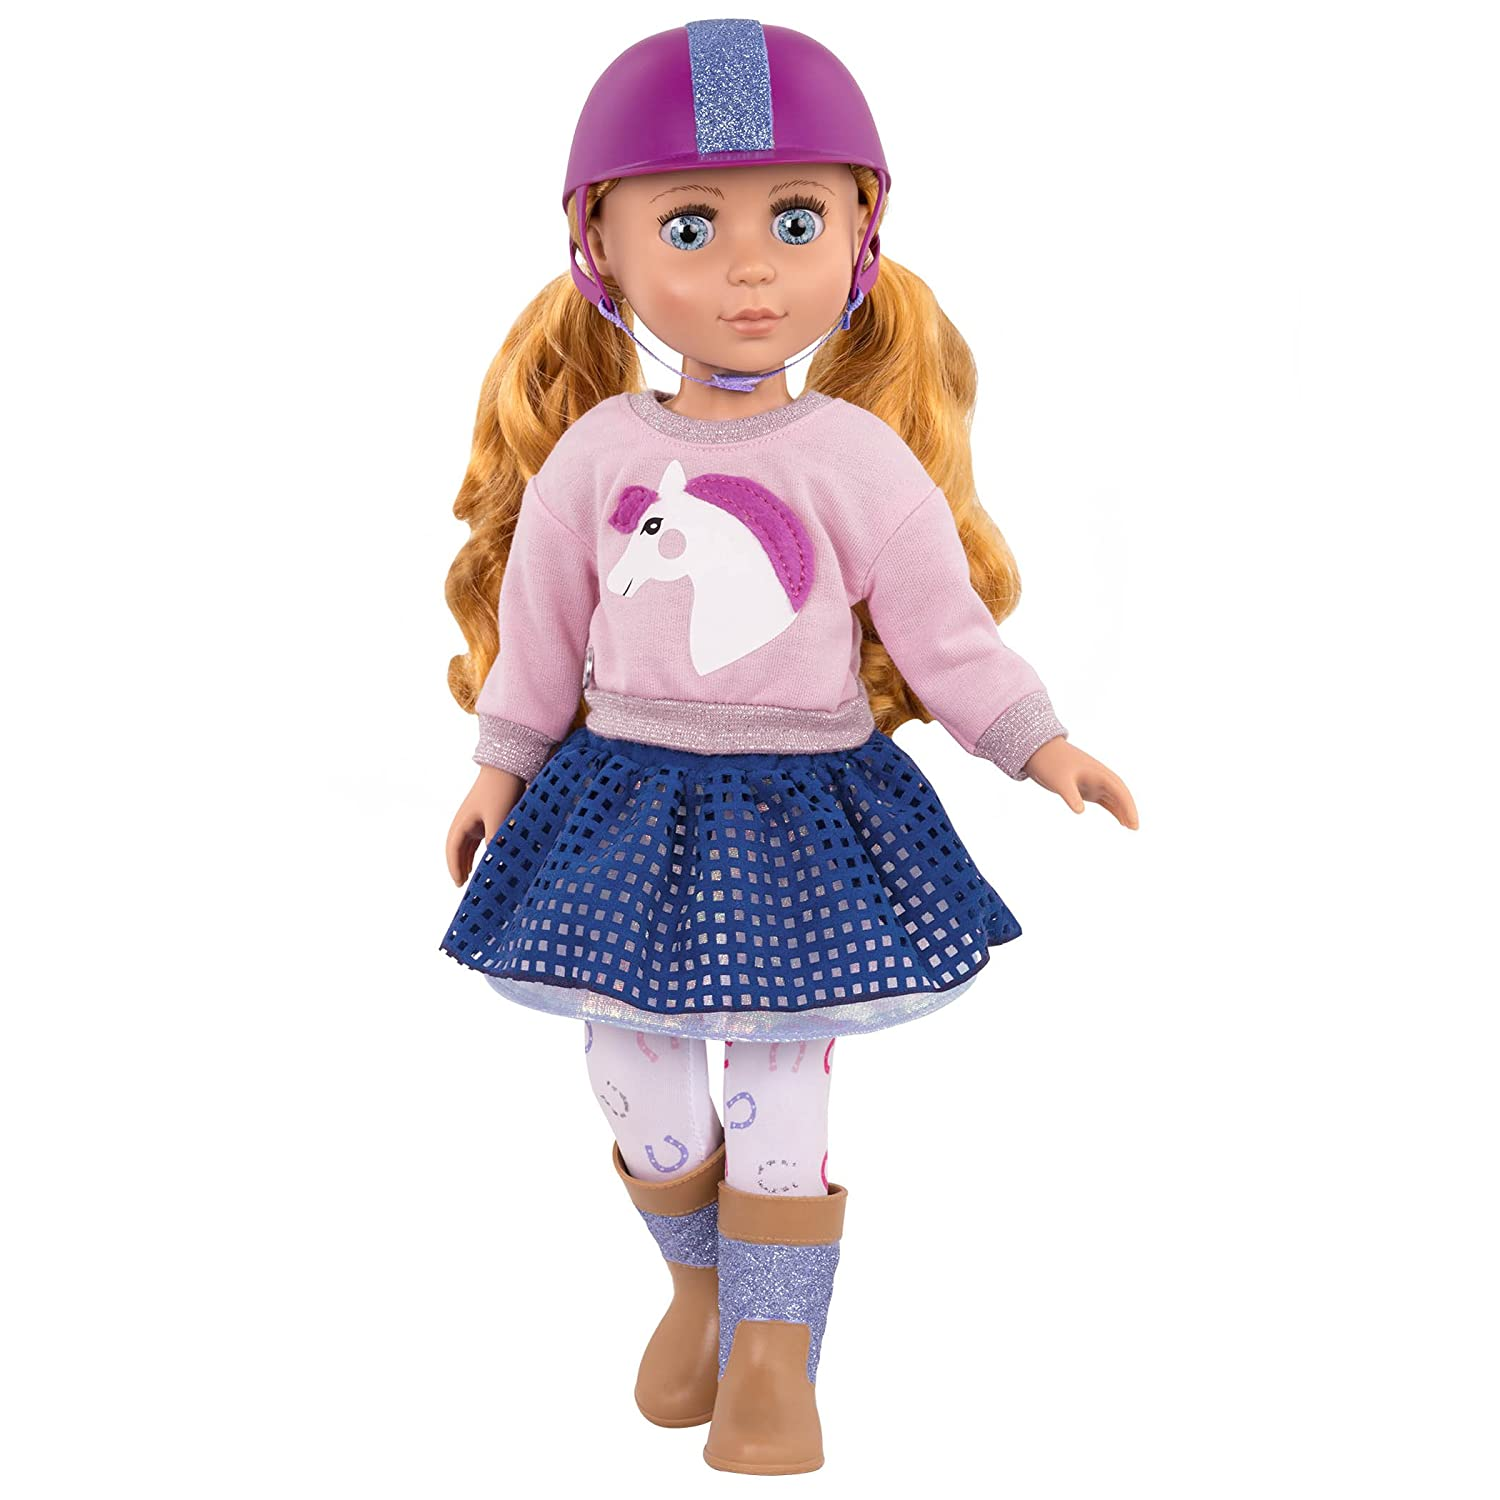 Glitter Girls by Battat - Gallop and Glow! Outfit -14-inch Doll Clothes– Toys, Clothes and Accessories For Girls 3-Year-Old and Up Branford LTD GG50026Z